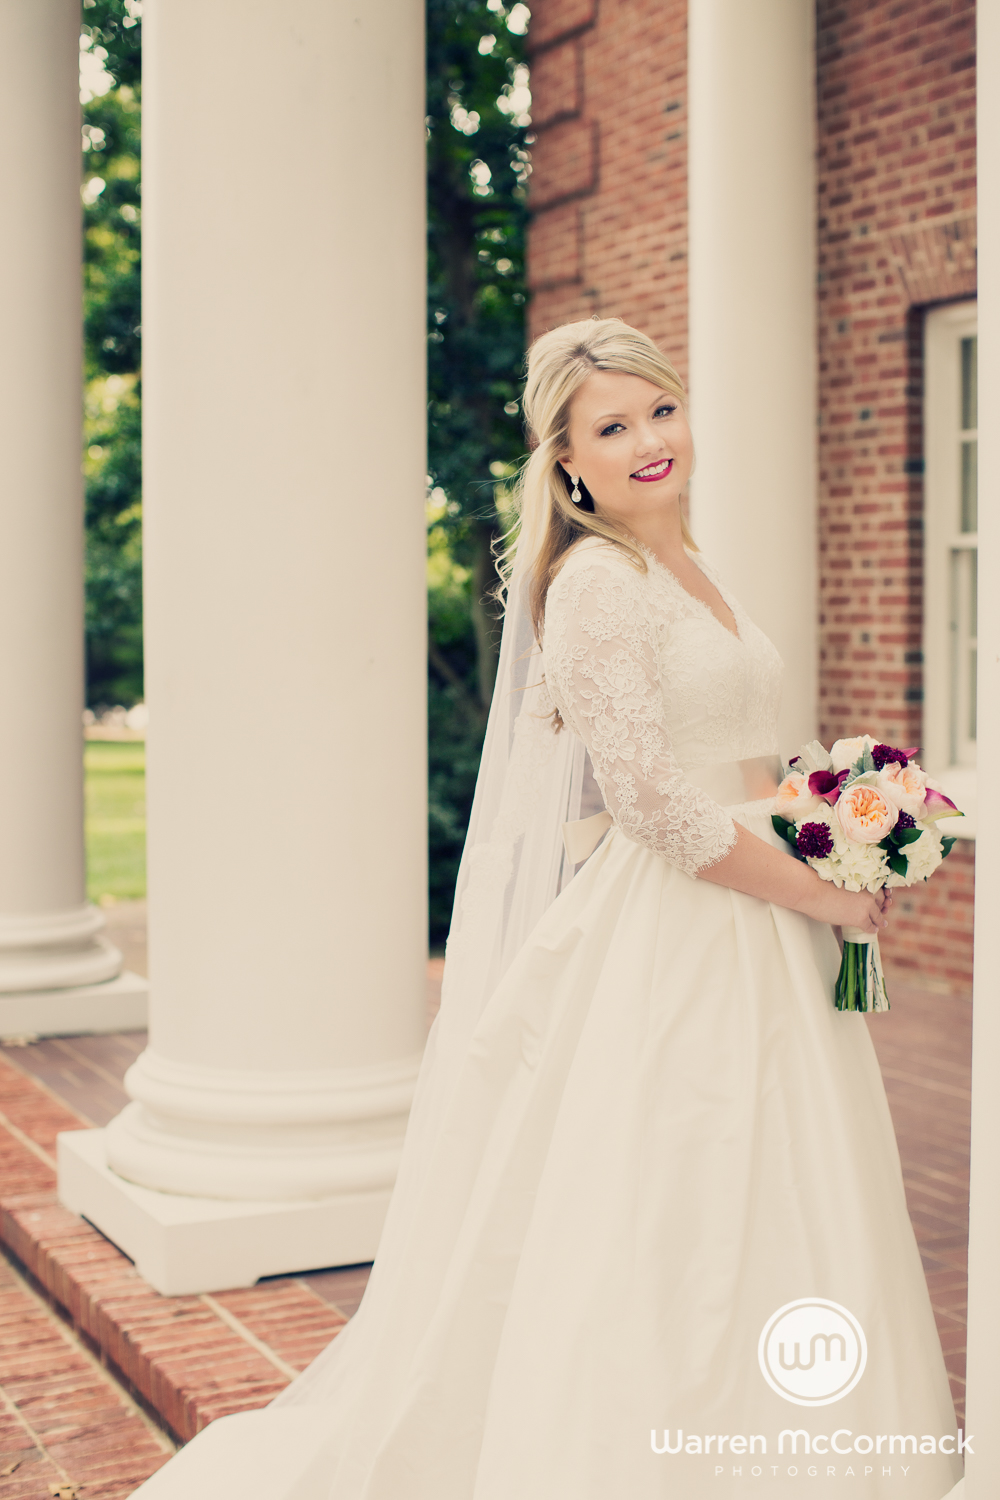 Raleigh-Wedding-Photographer-8.jpg